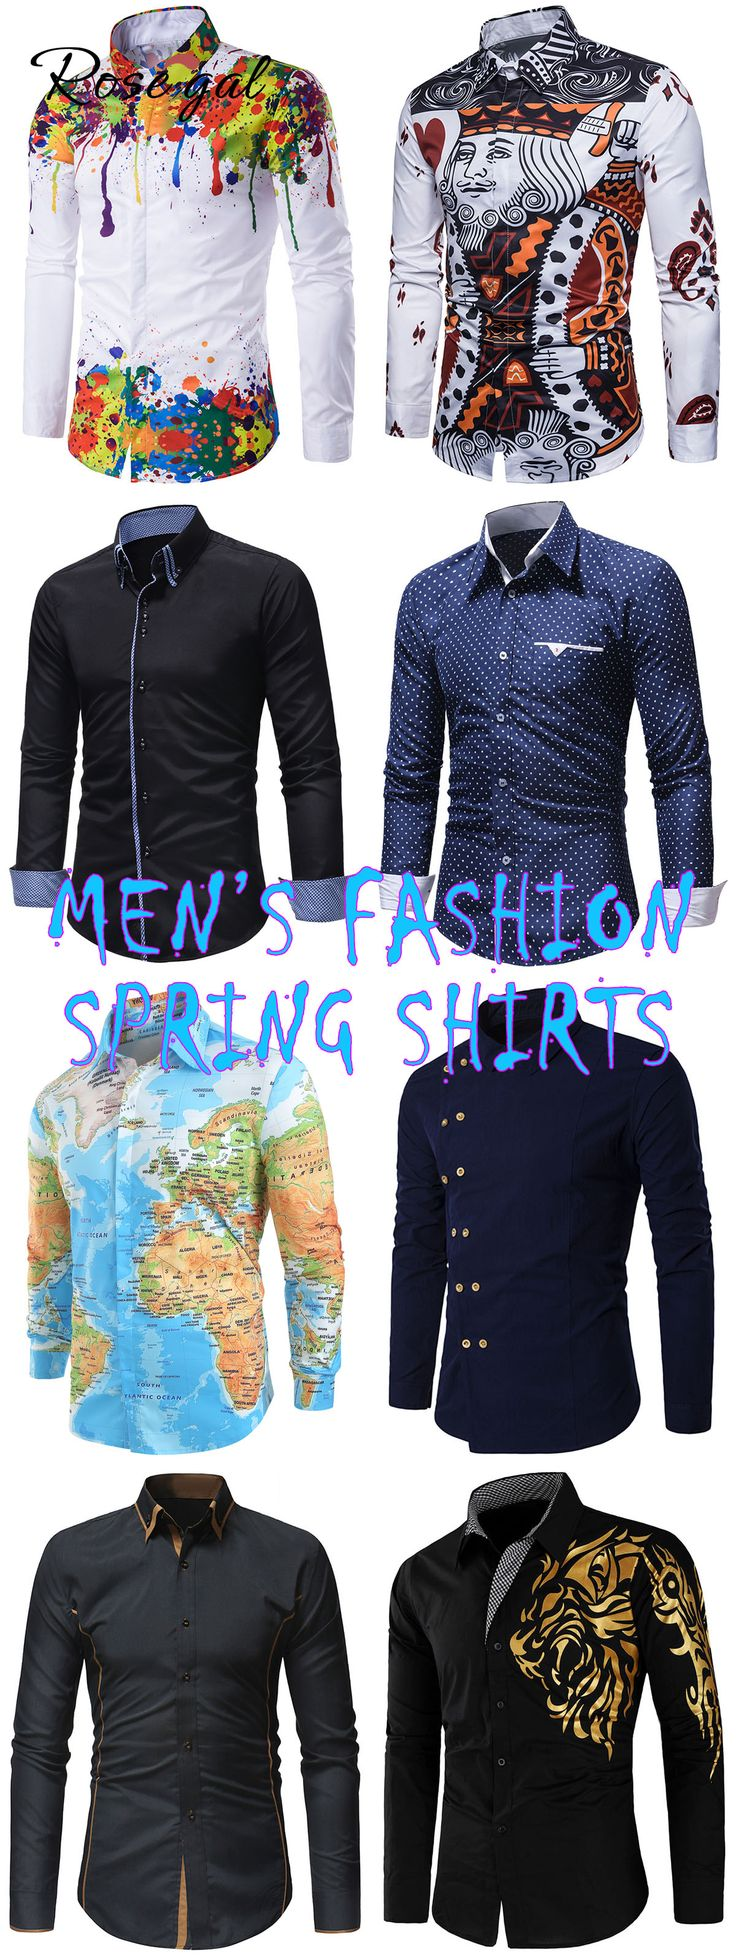 Rosegal mens spring outfits long sleeves shirts ideas